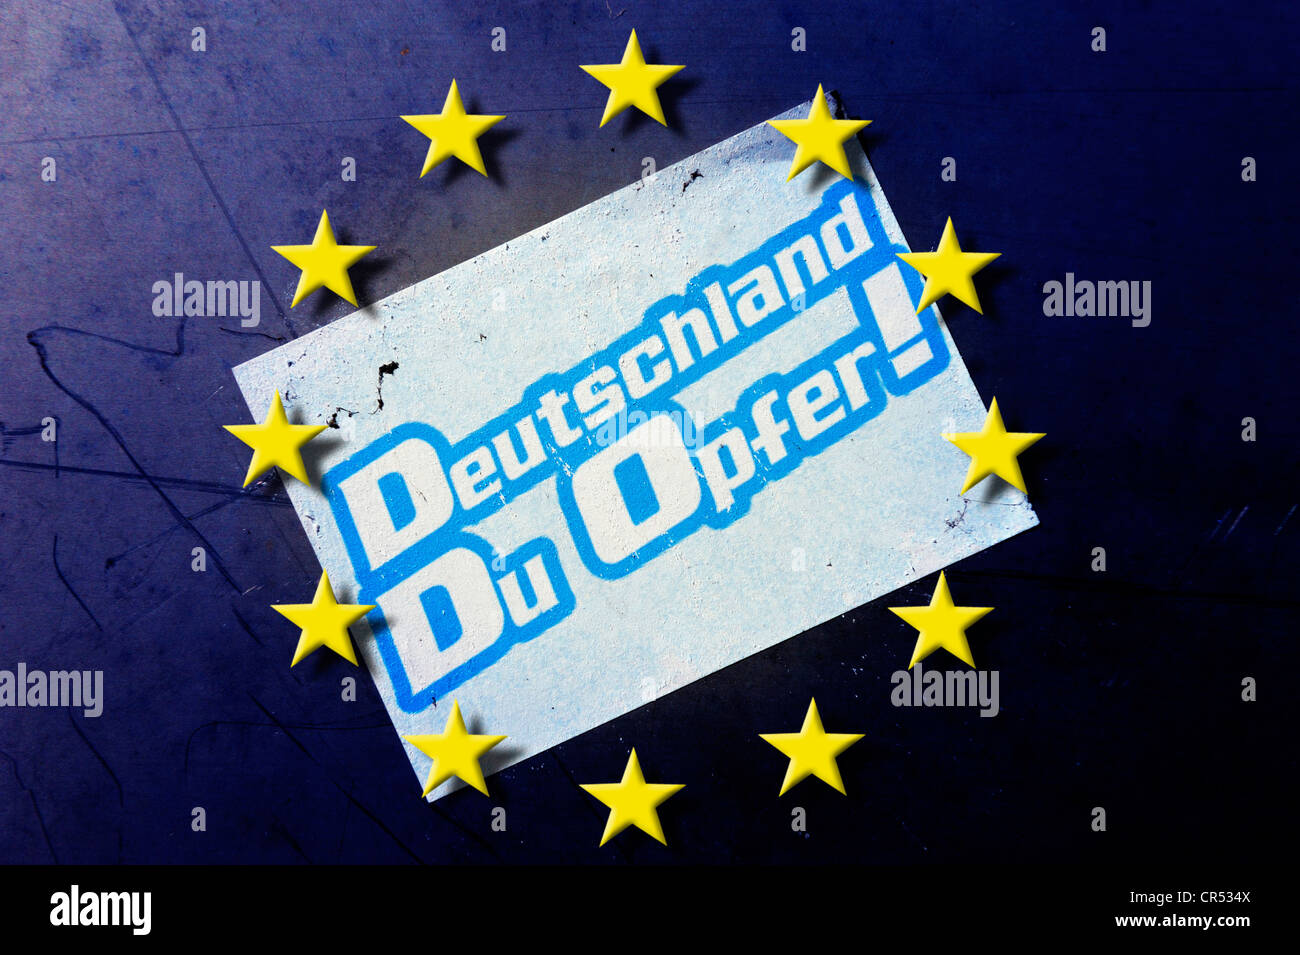 EU stars and sticker on a wall, 'Deutschland, Du Opfer!', German for 'Germany, you are a victim' - Stock Image